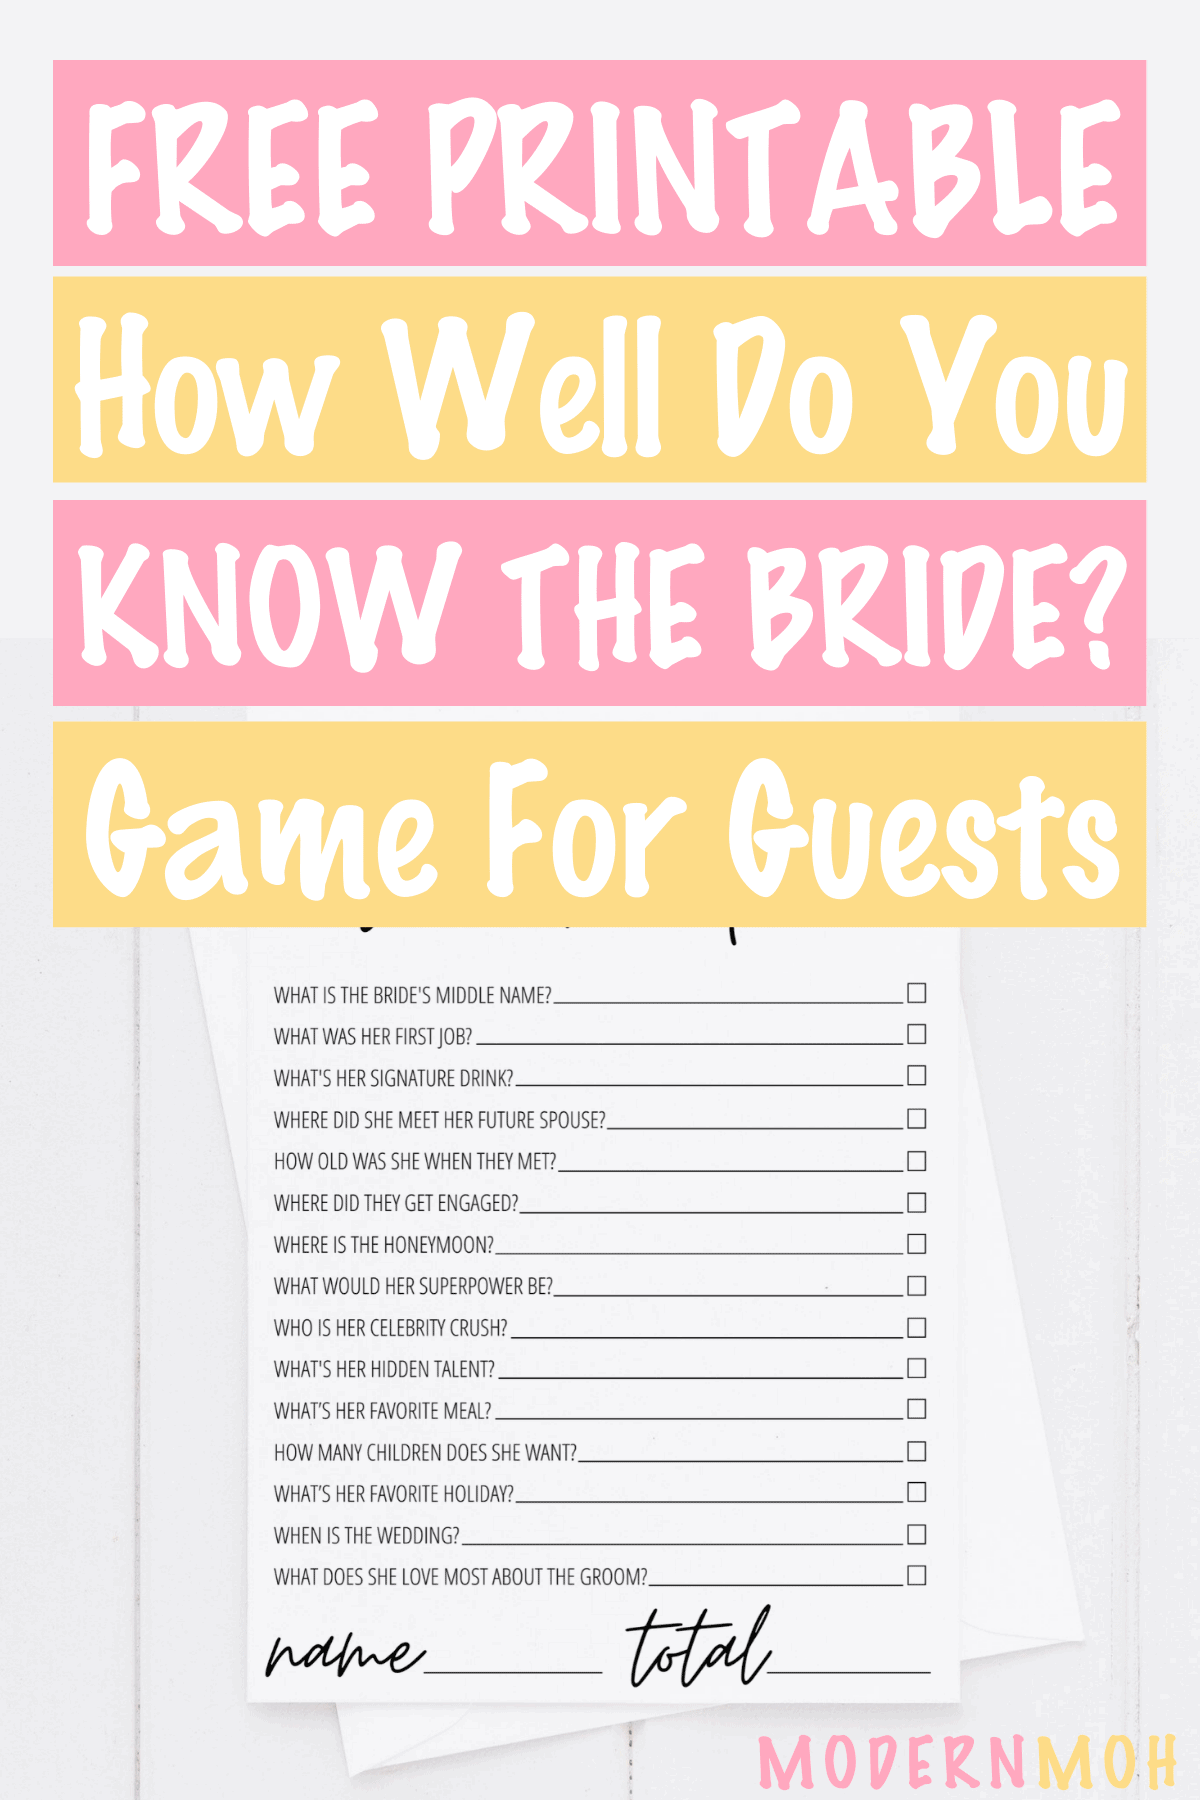 How Well Do You Know the Bride? Free Printable